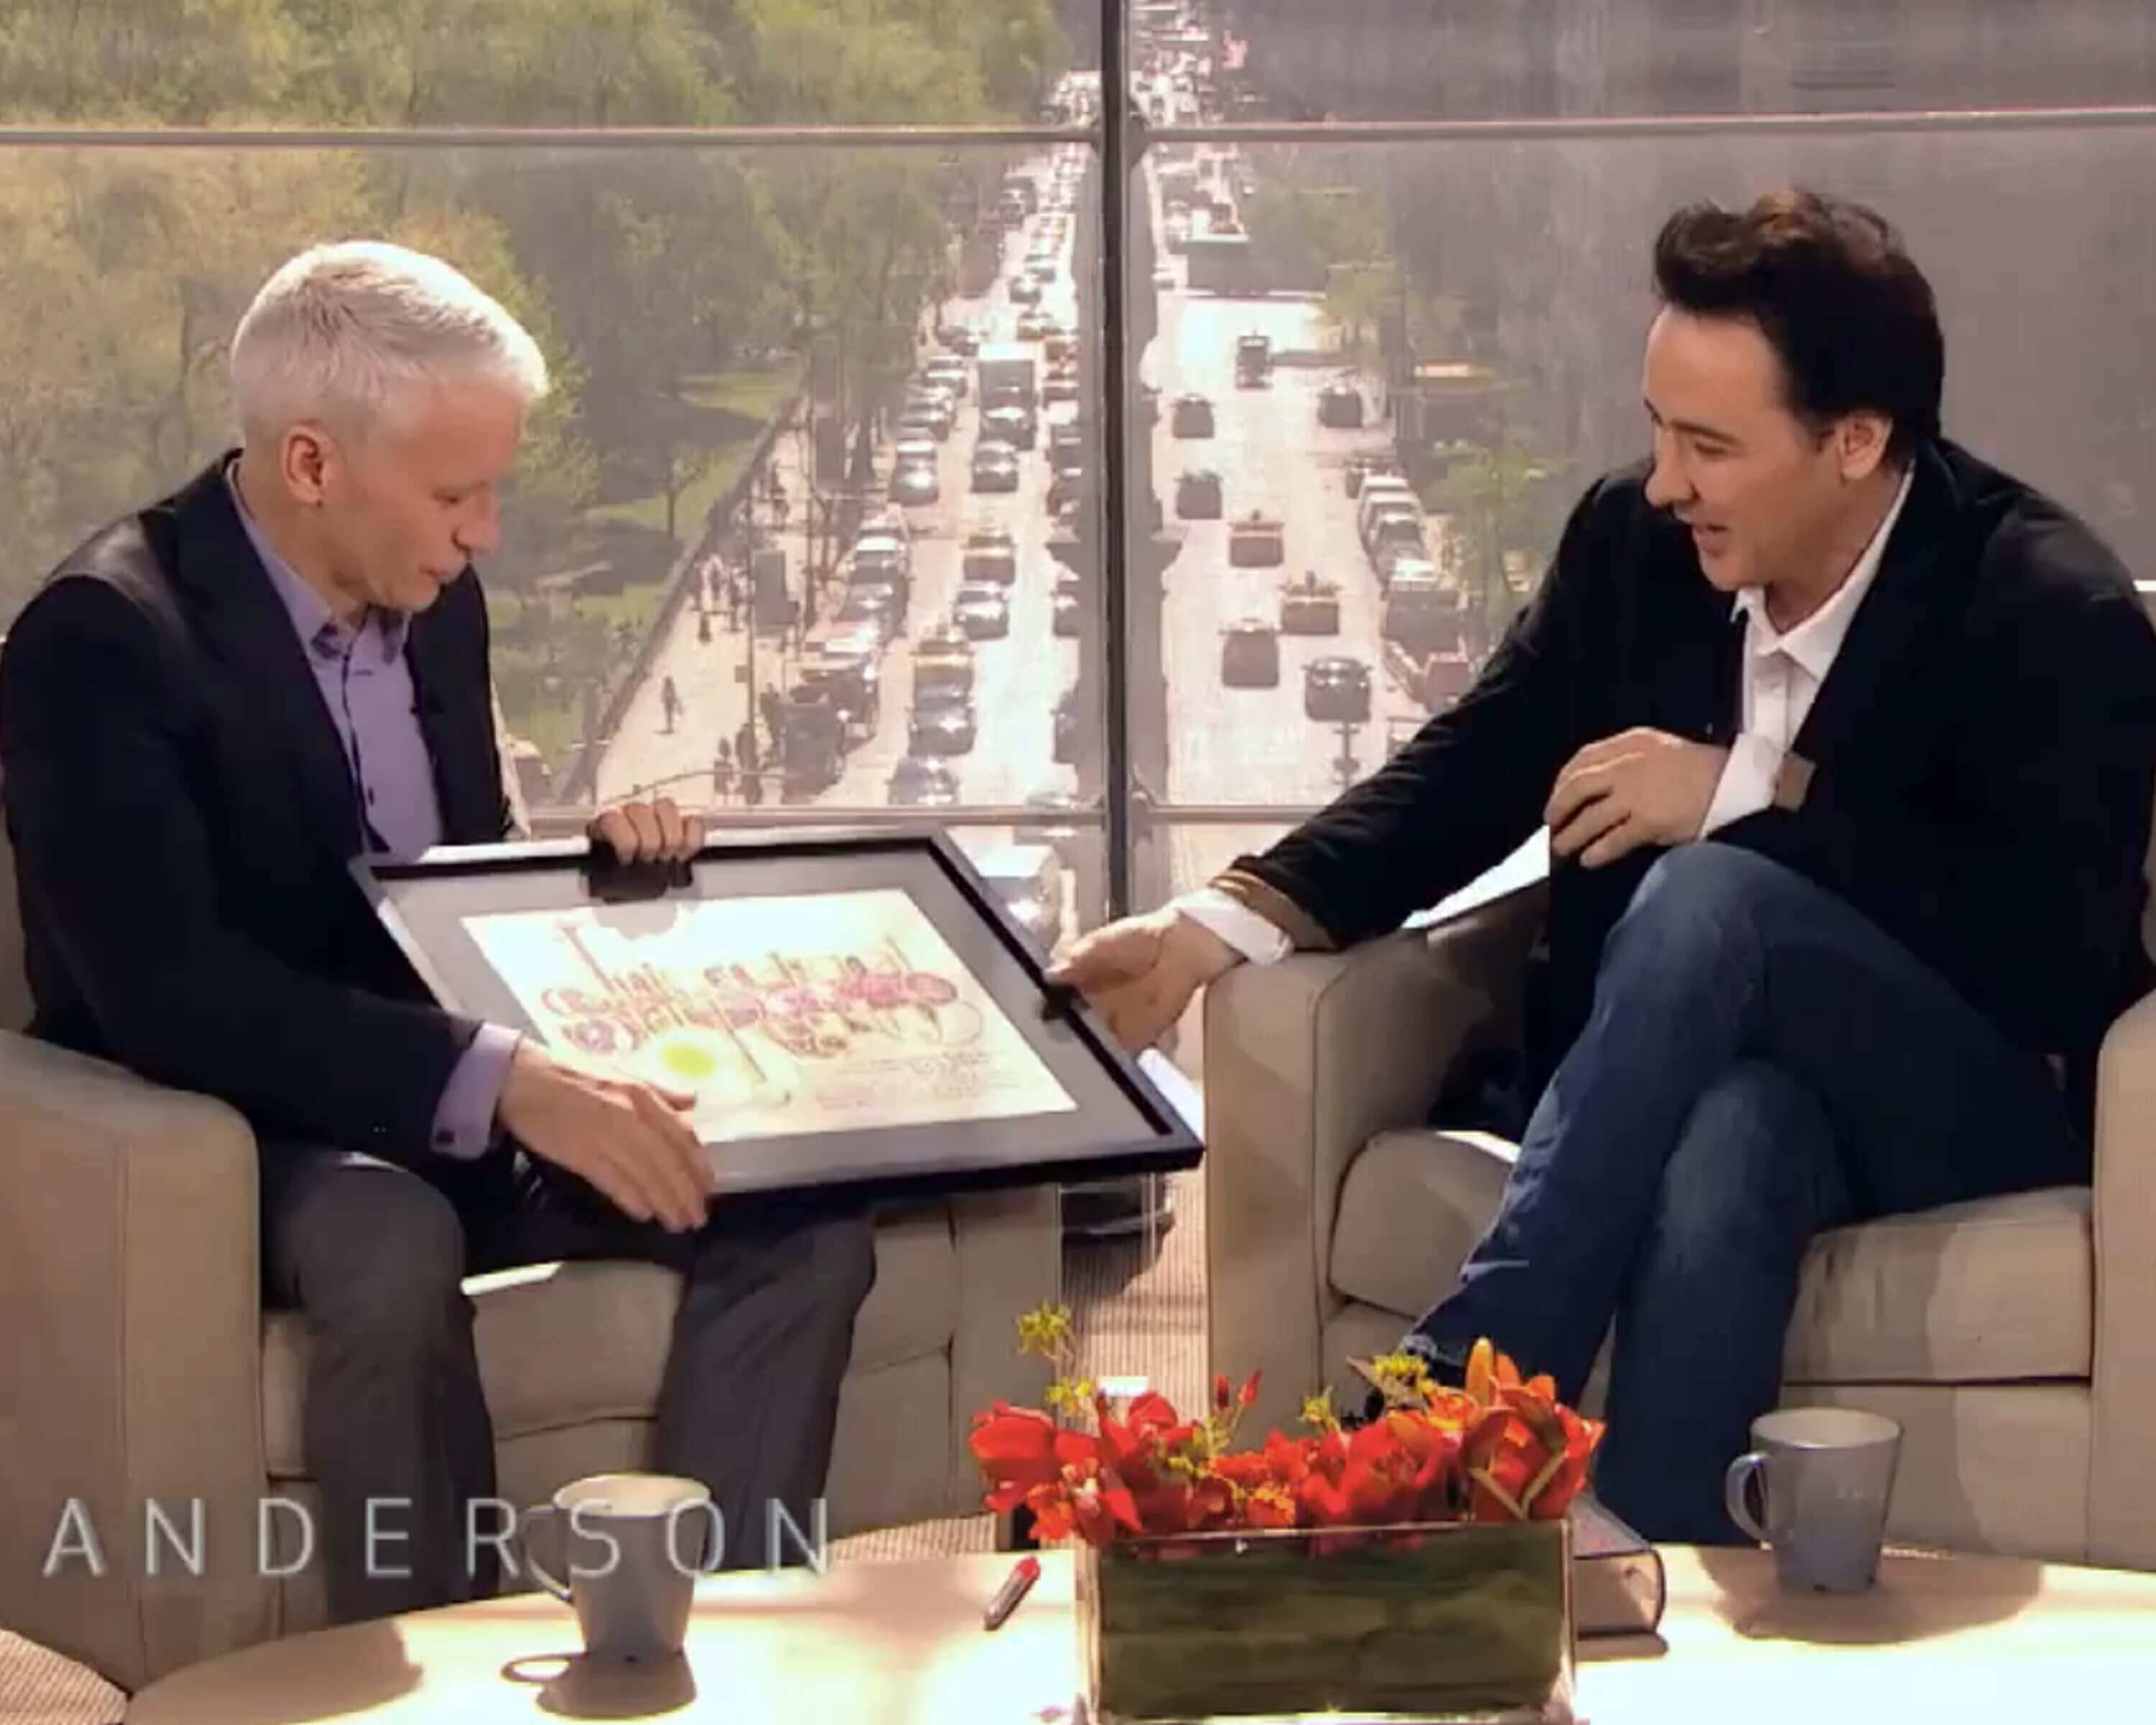 Celebrity television host Anderson Cooper presented movie actor John Cusack with a star gift from International Star Registry